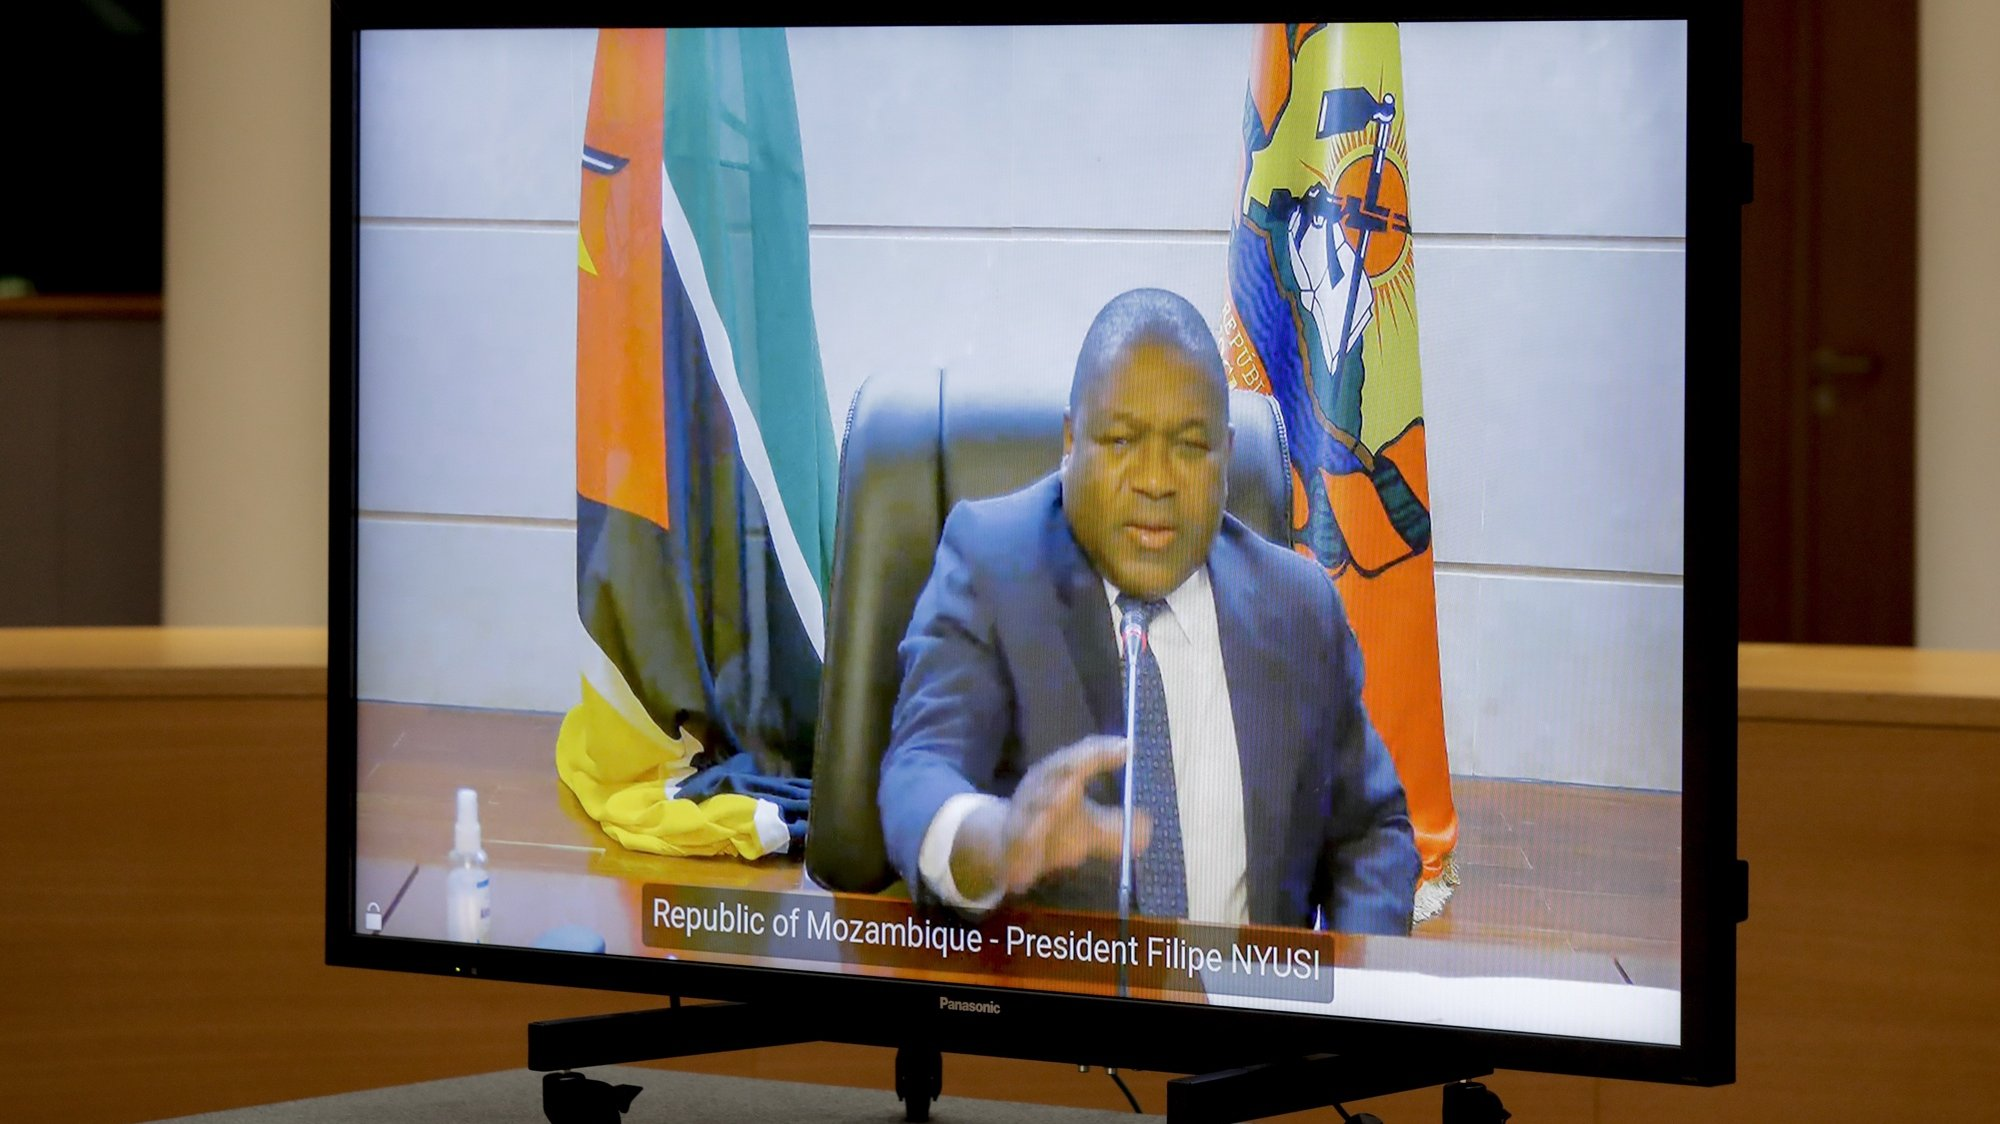 epa09253137 Mozambique's President Filipe Nyusi during a video meeting with European Council President Charles Michel (not pictured) at the European Council building in Brussels, Belgium, 07 June 2021.  EPA/OLIVIER HOSLET / POOL